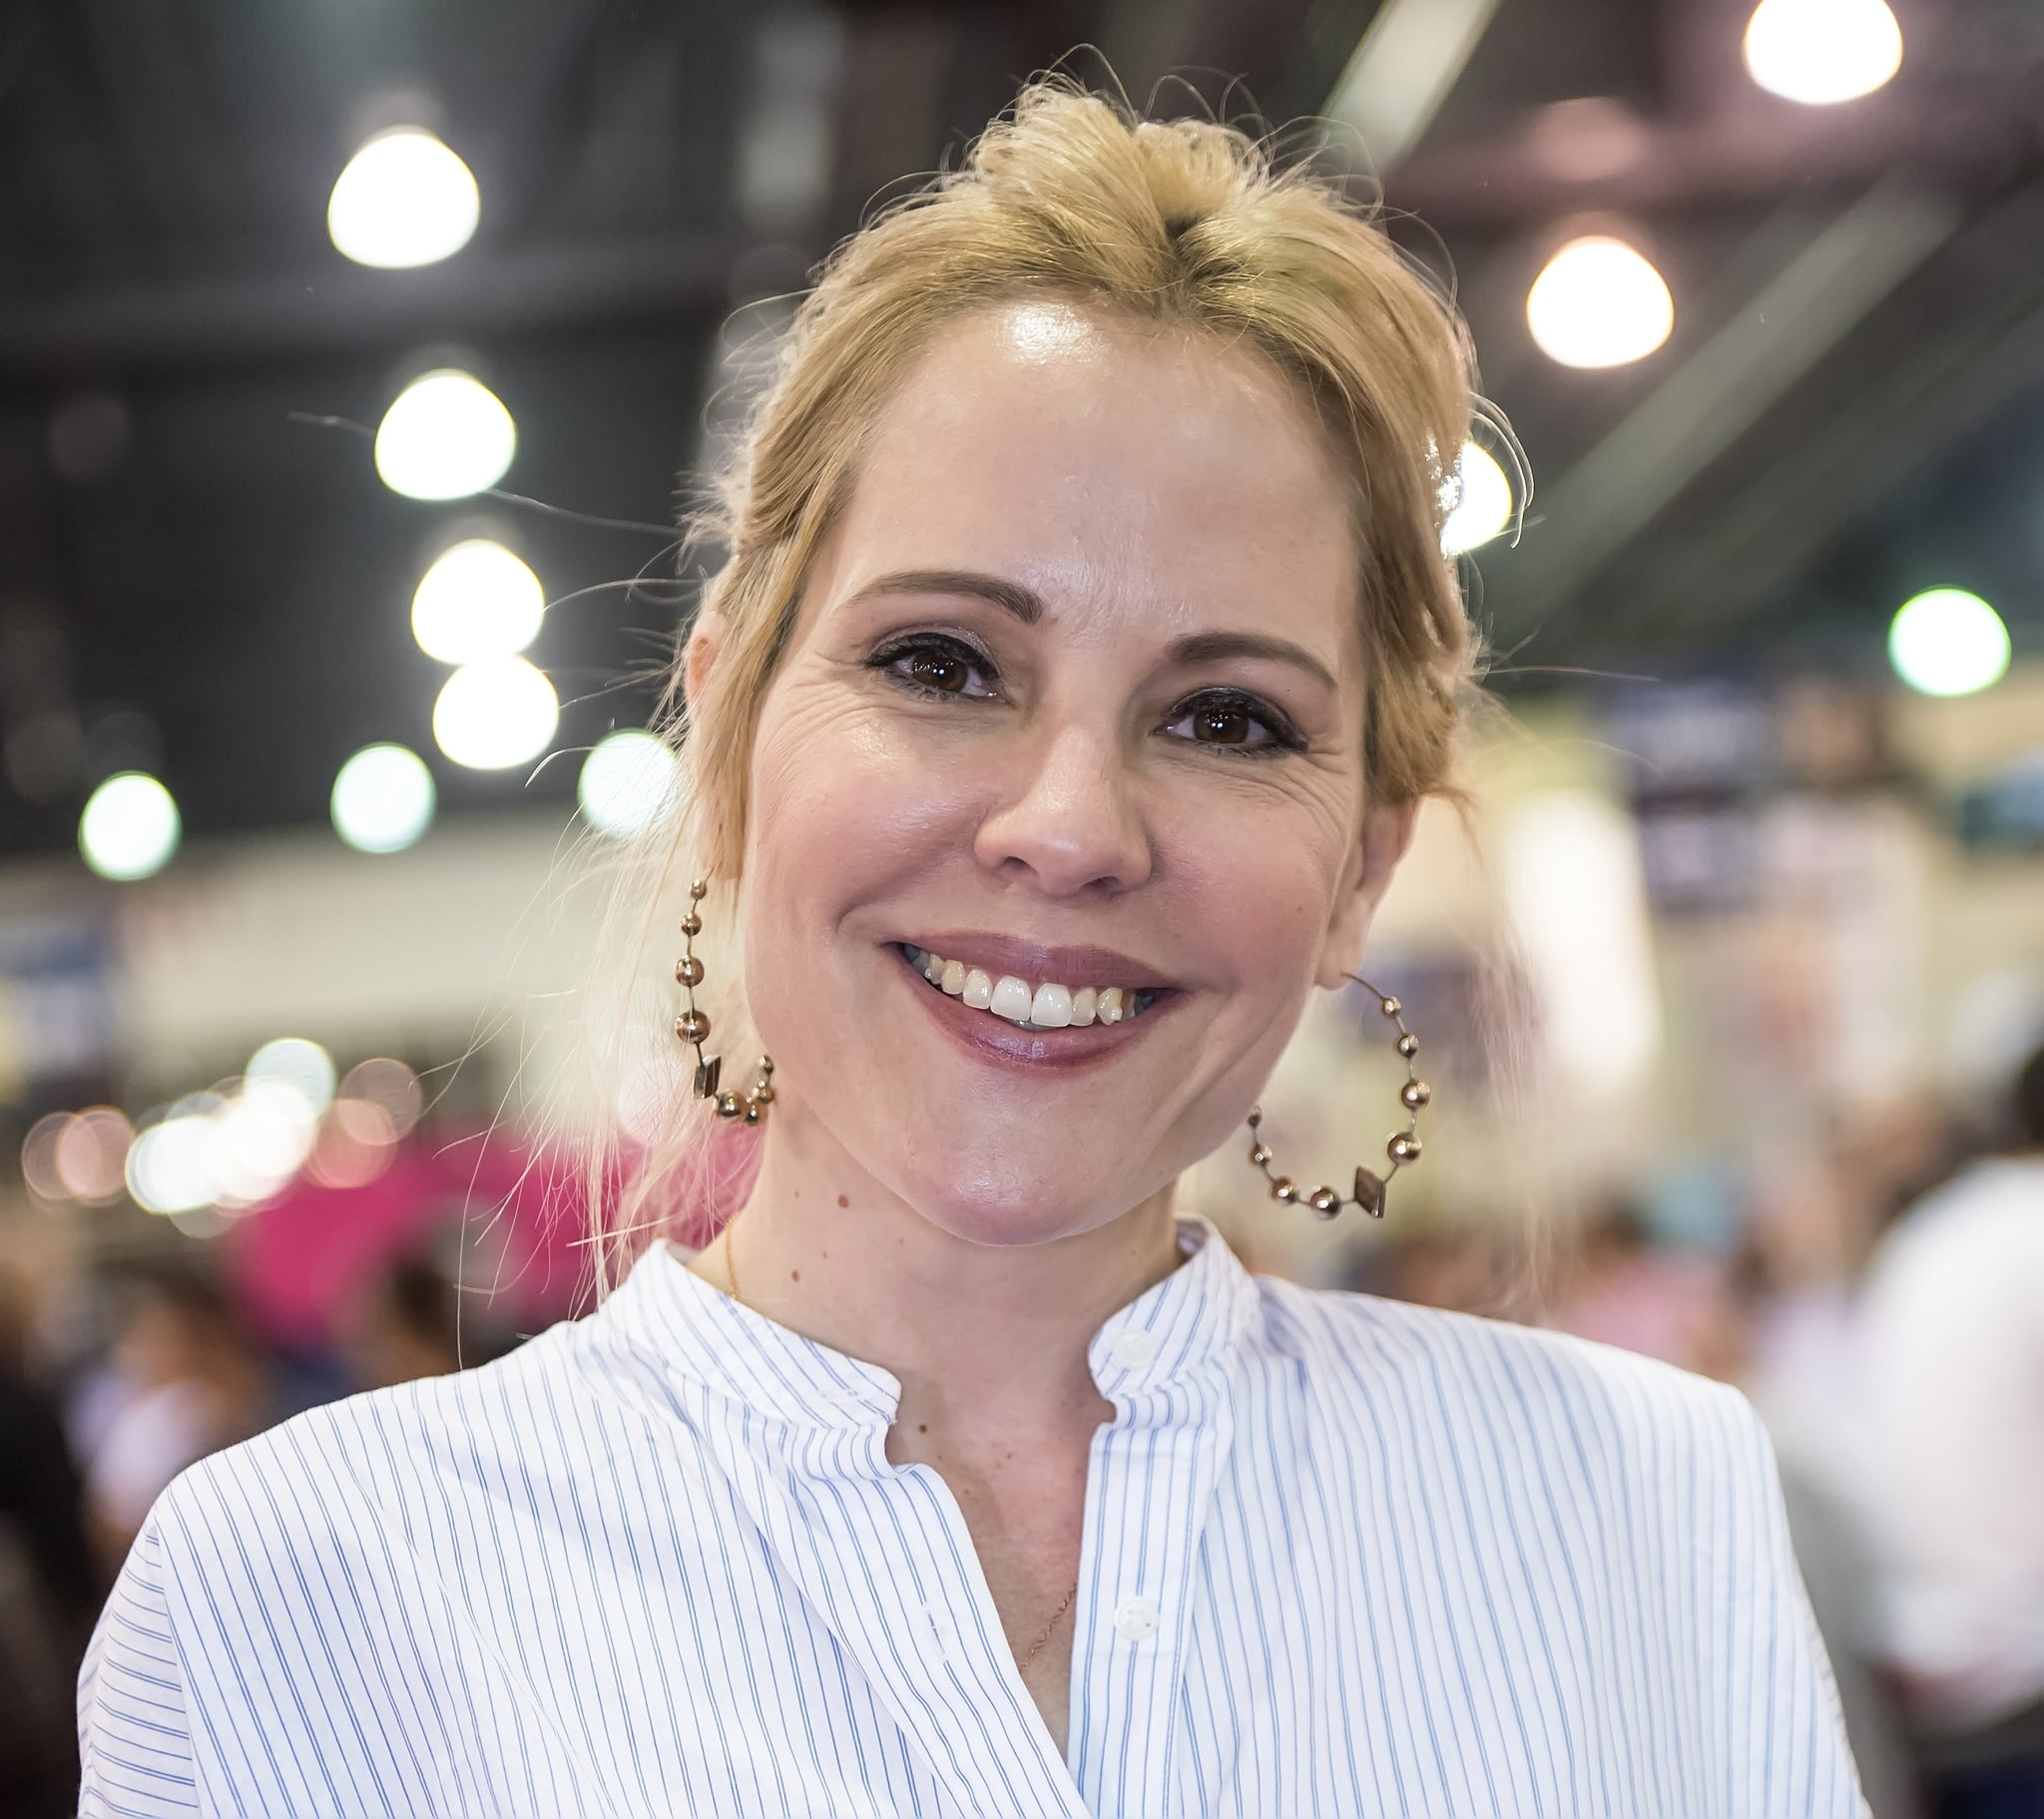 PHILADELPHIA, PA - JUNE 04:  Actress Emma Caulfield attends Wizard World Comic Con Philadelphia 2017 - Day 4 at Pennsylvania Convention Center on June 4, 2017 in Philadelphia, Pennsylvania.  (Photo by Gilbert Carrasquillo/Getty Images)